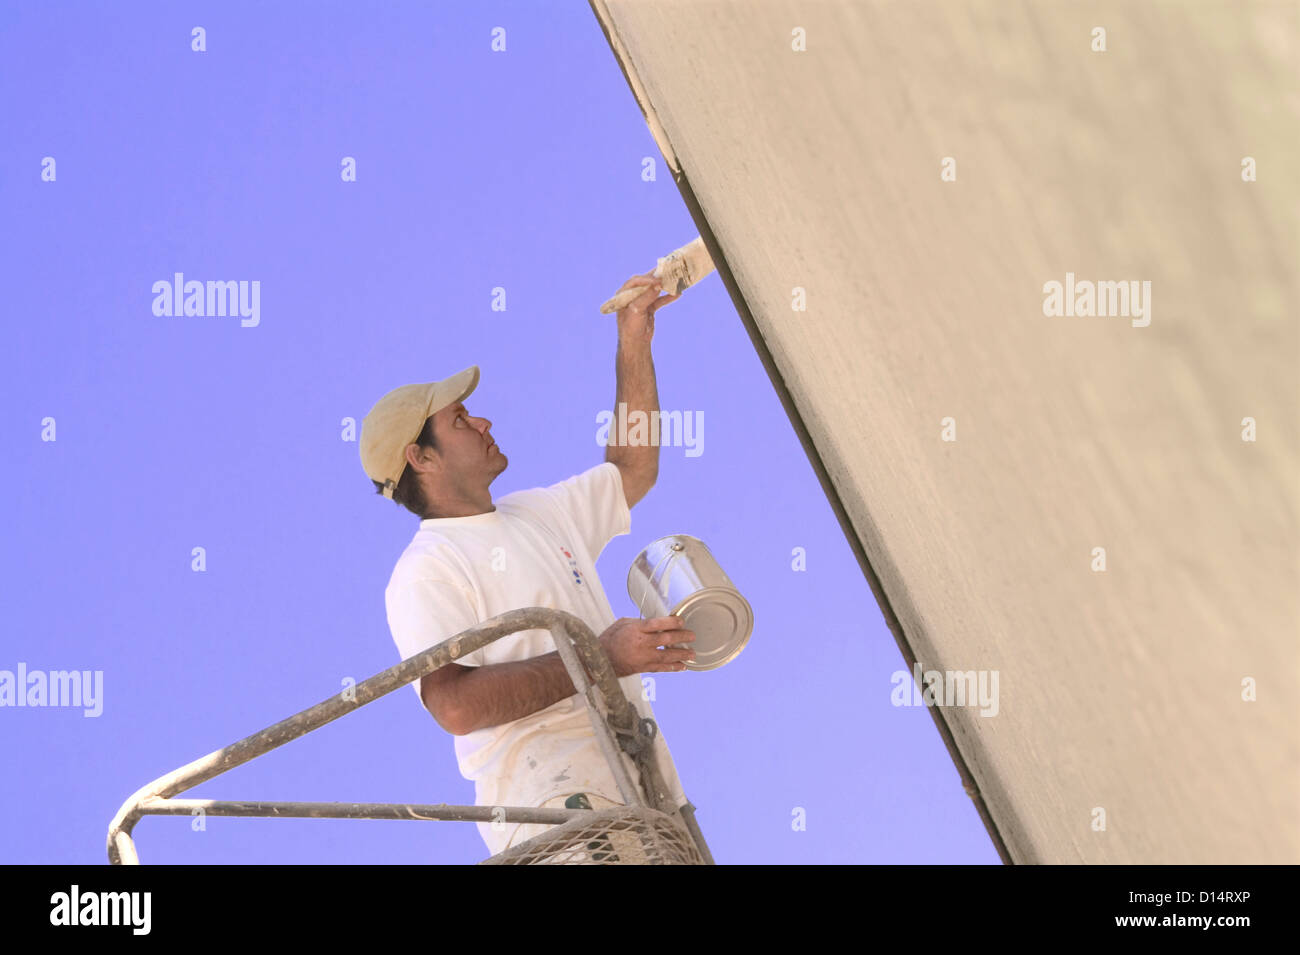 Painter Painting Outside Of Building - Stock Image